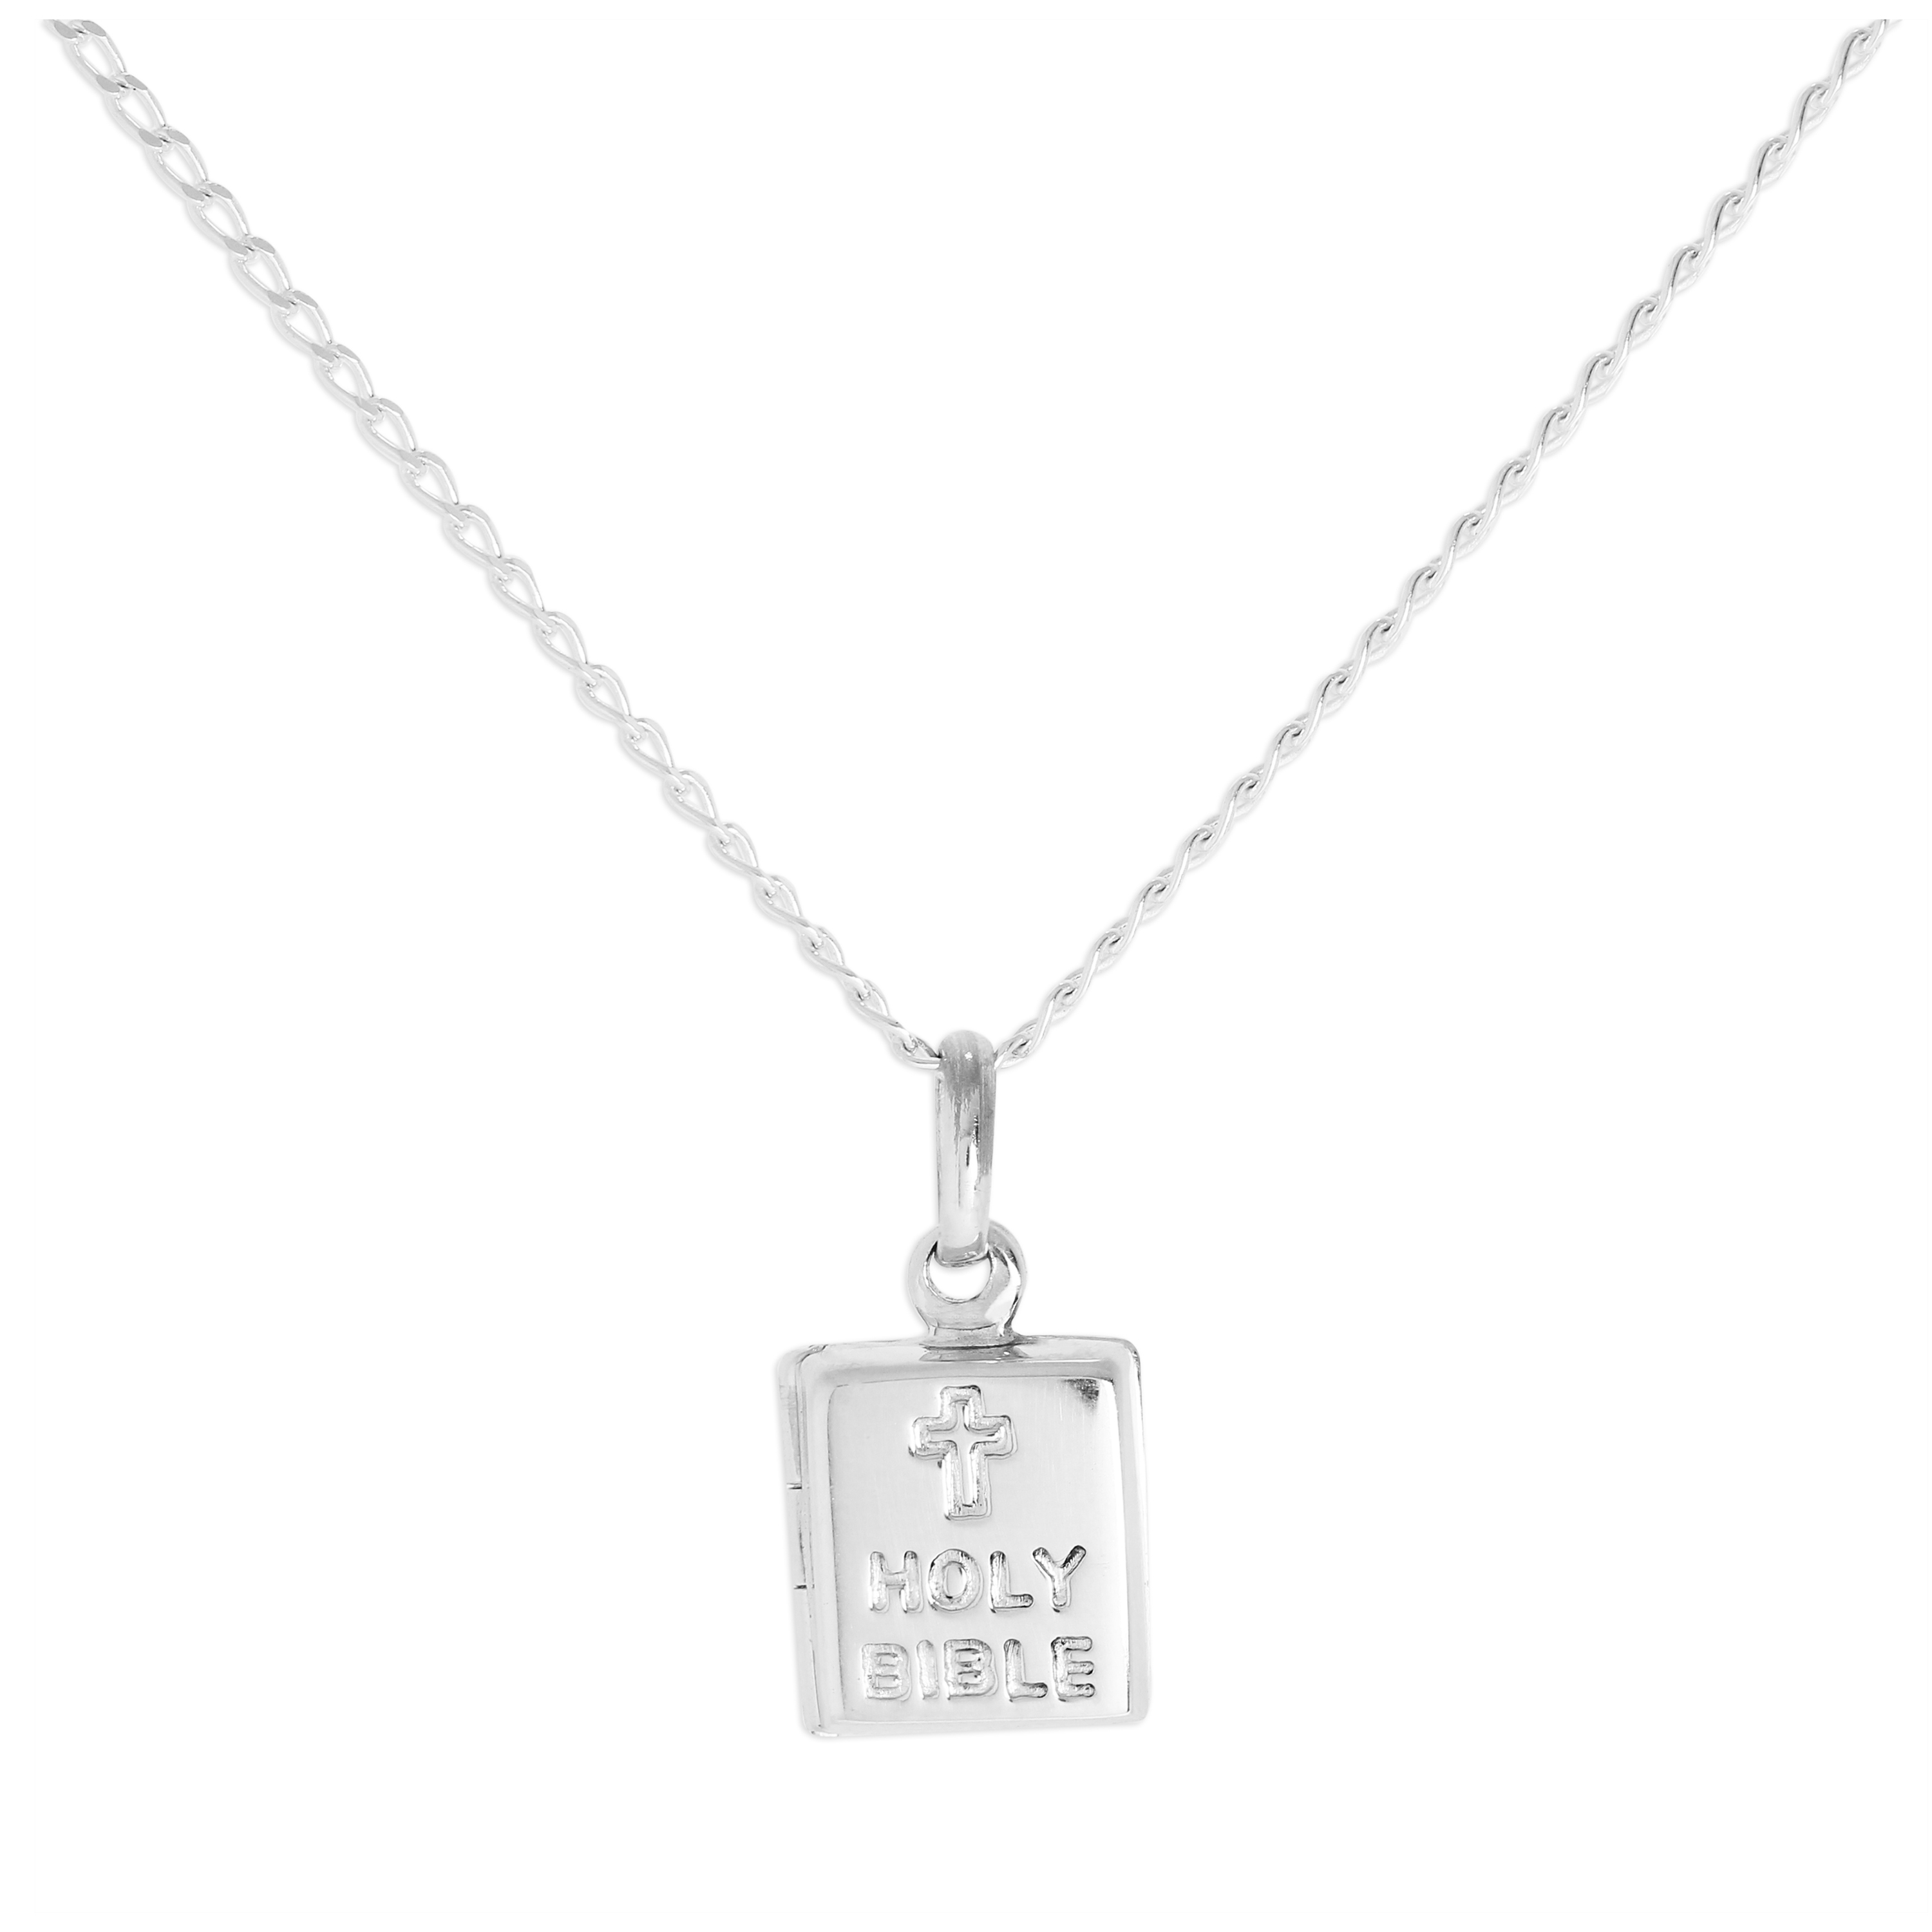 An image of Sterling Silver Holy Bible Locket on Chain 16 24 Inches